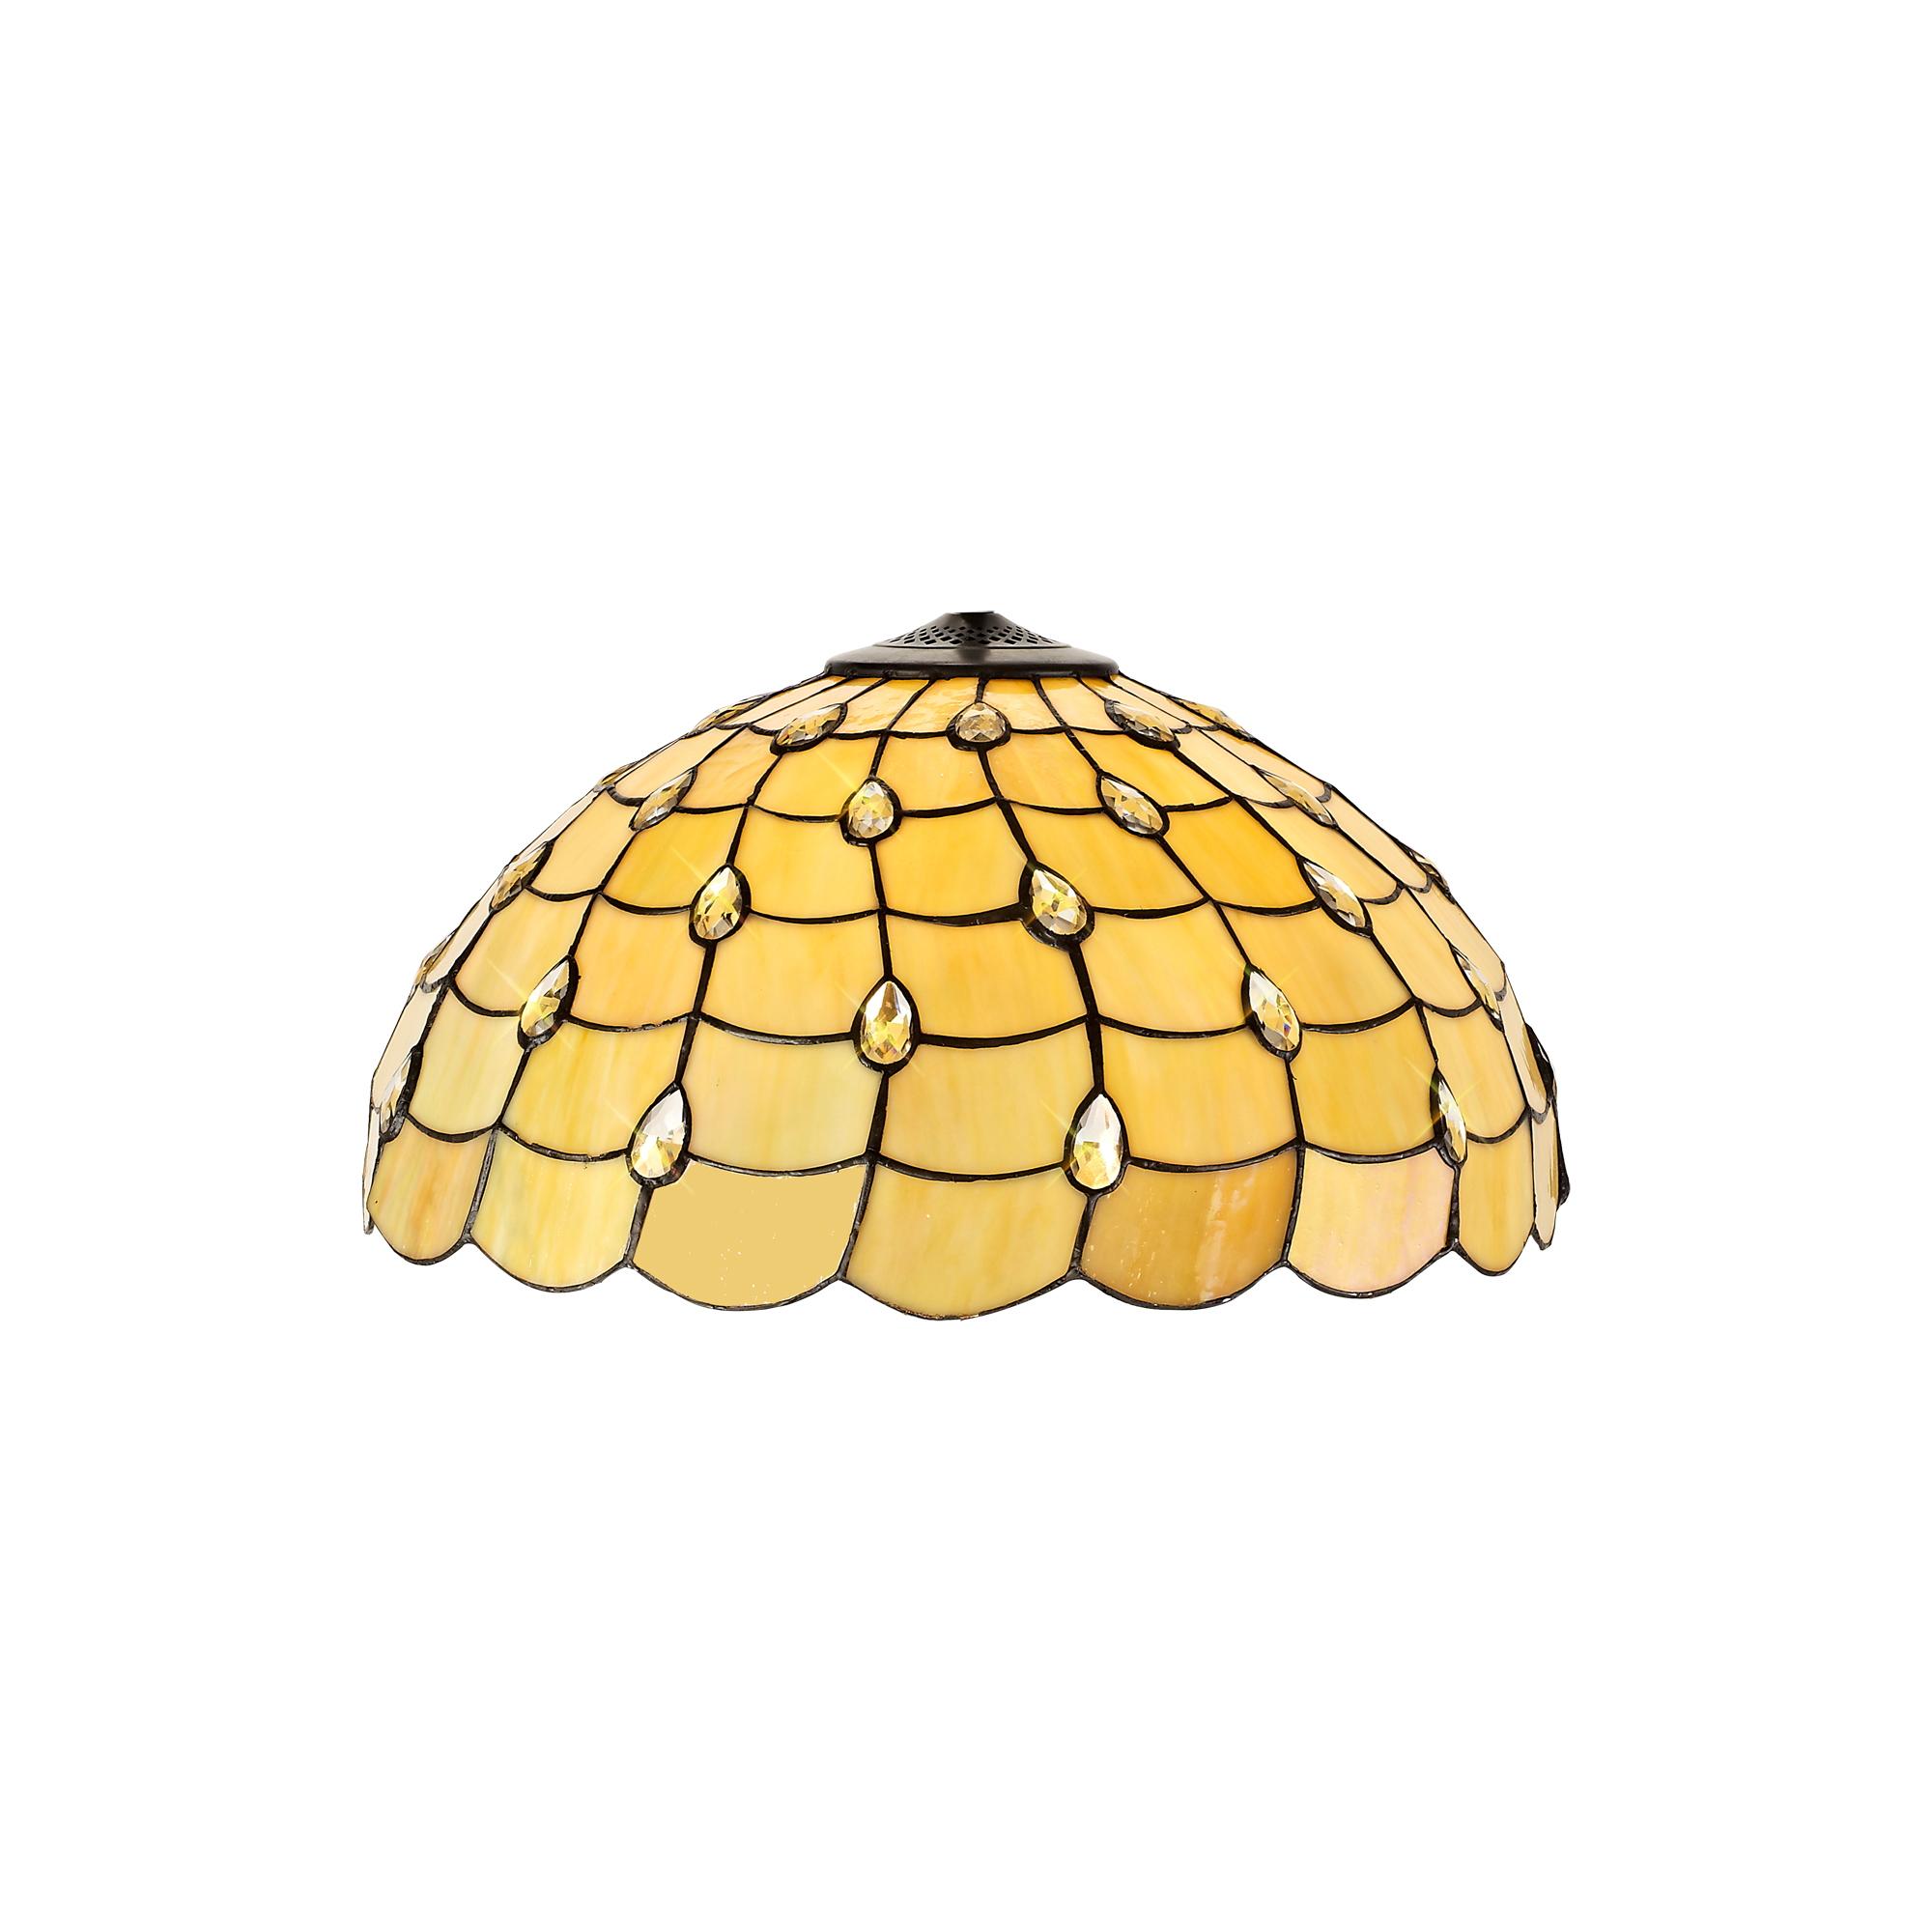 1 Light Downlighter Pendant E27 With 50cm Tiffany Shade, Beige/Clear Crystal/Aged Antique Brass